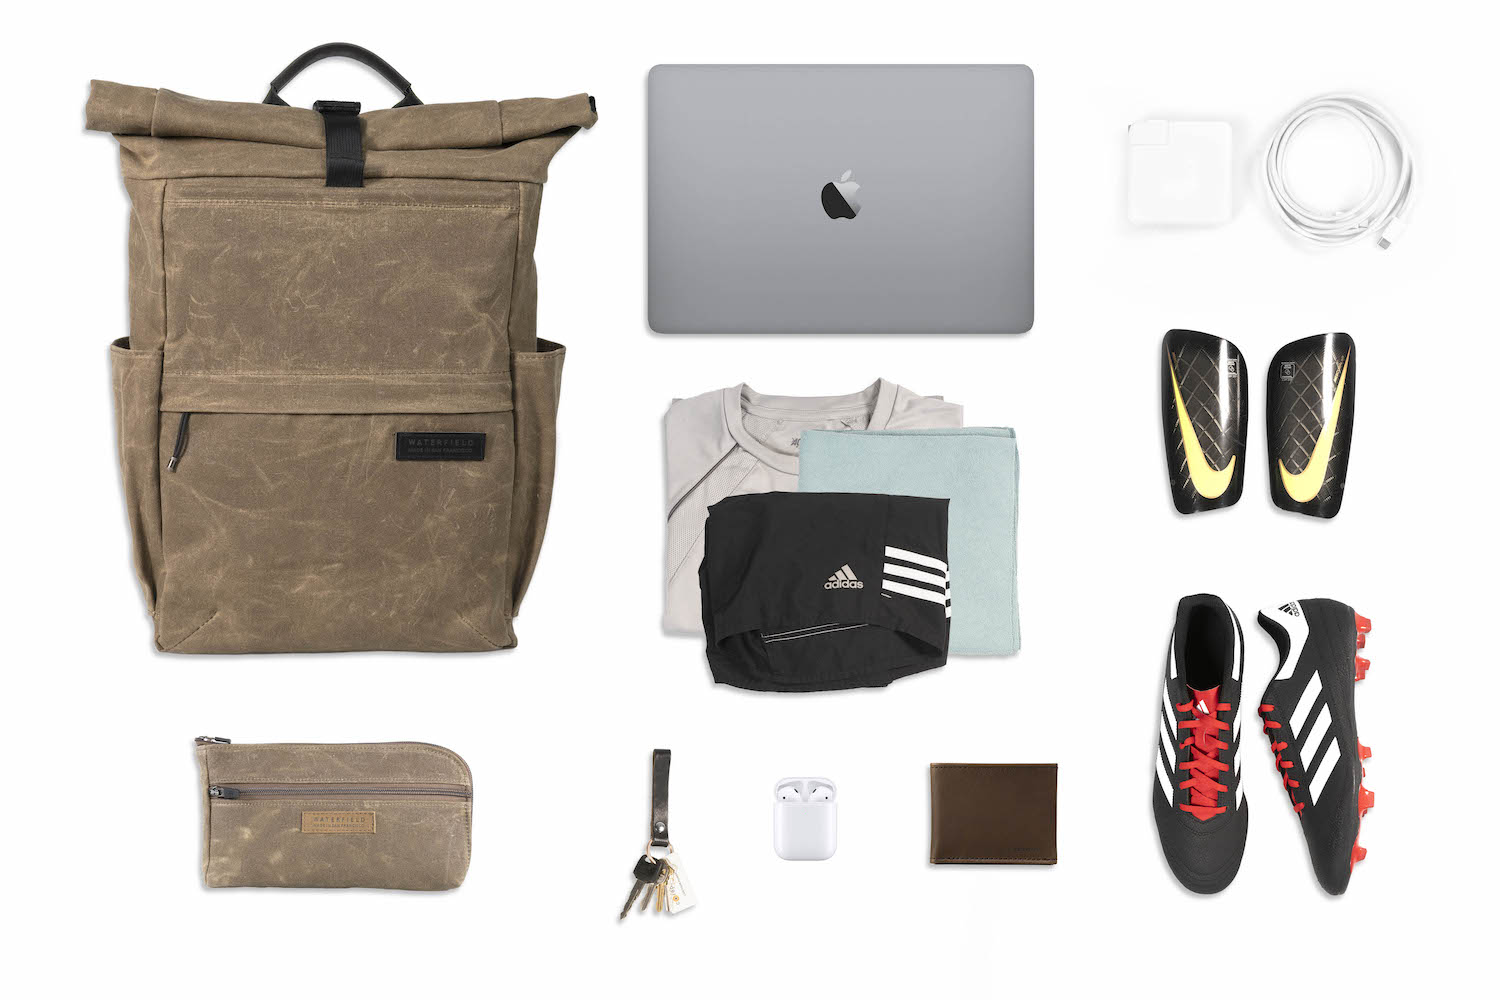 WaterField new canvas MacBook bag from work to play